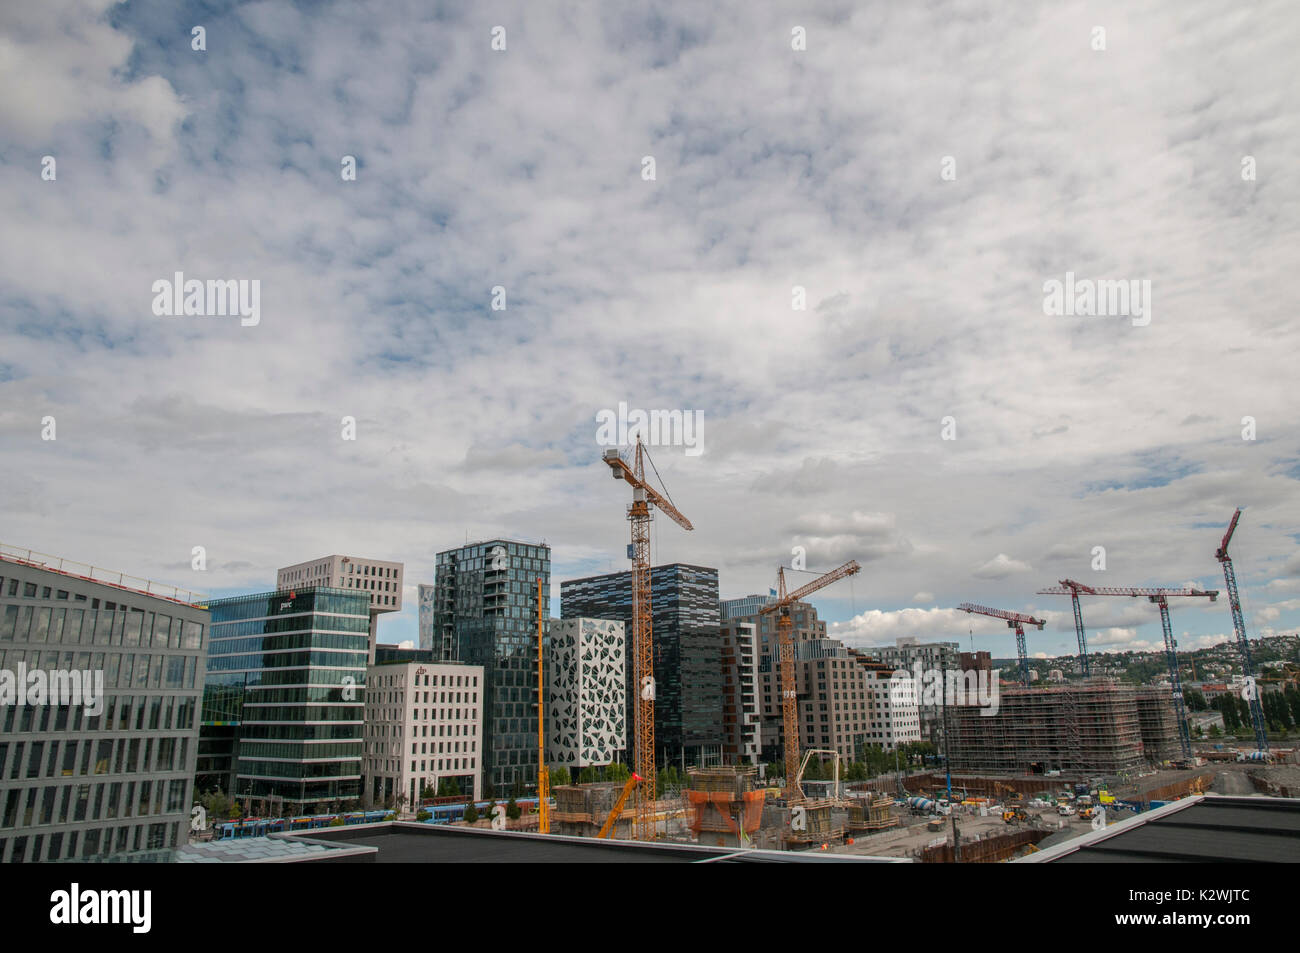 Construction work going on around the Barcode development in Bjørvika, central Oslo, as seen from the Oslo Opera House. - Stock Image